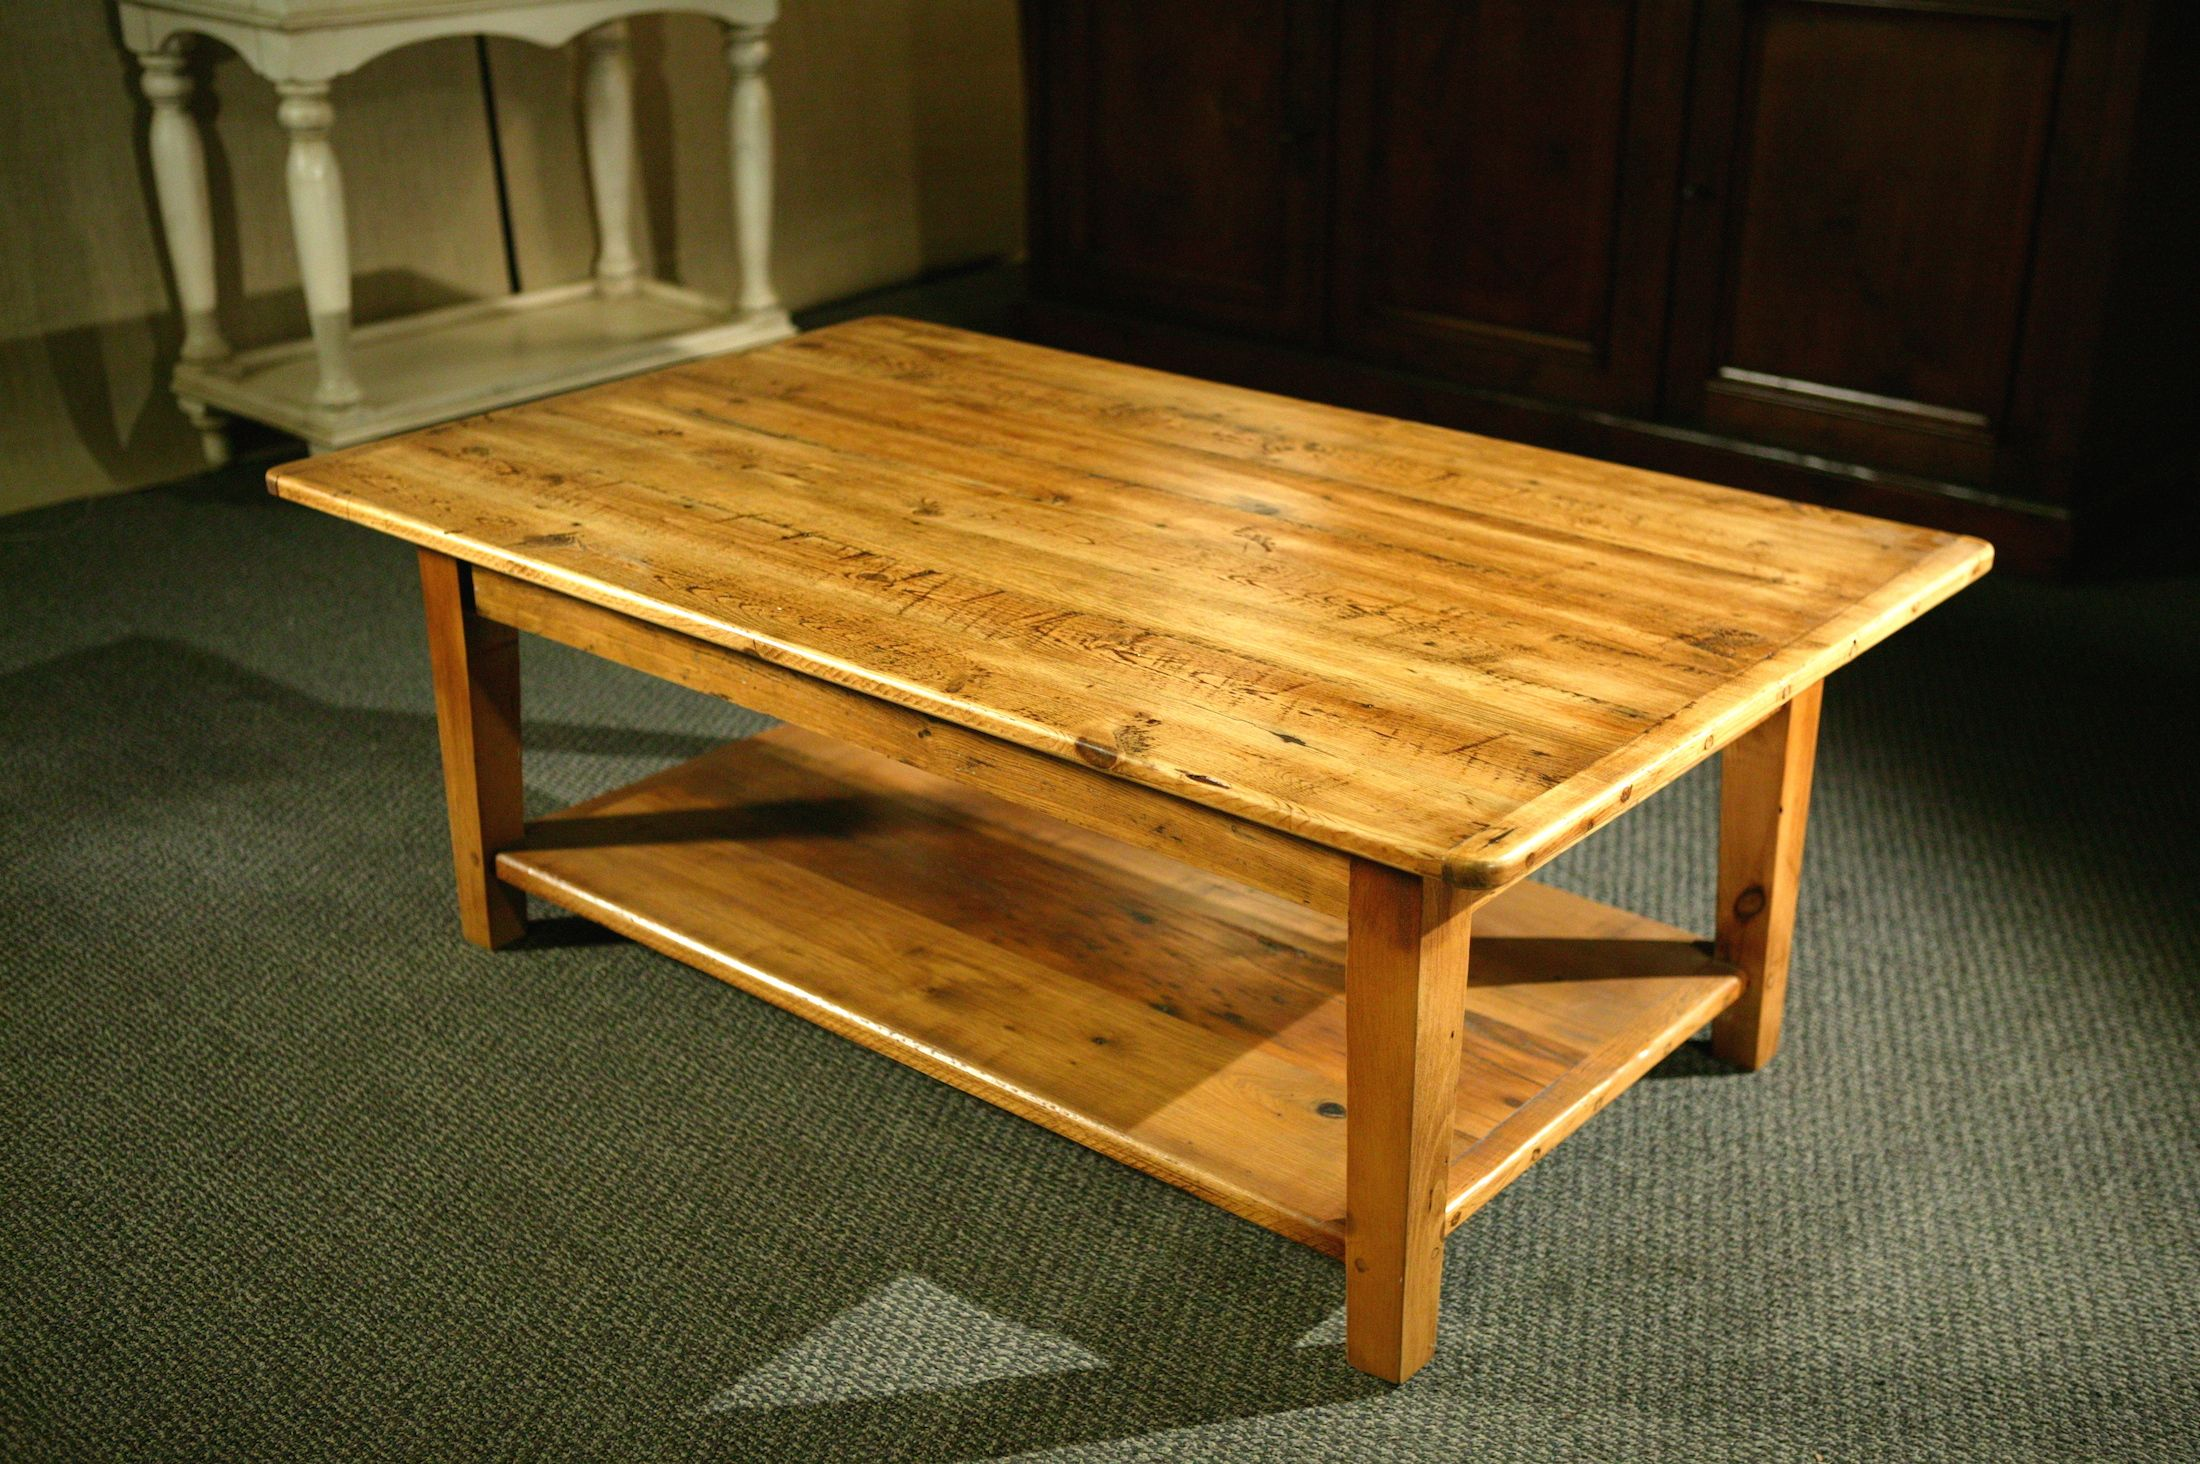 Coffee Table With Shelf Tapered Legs In Golden Brown Finish With